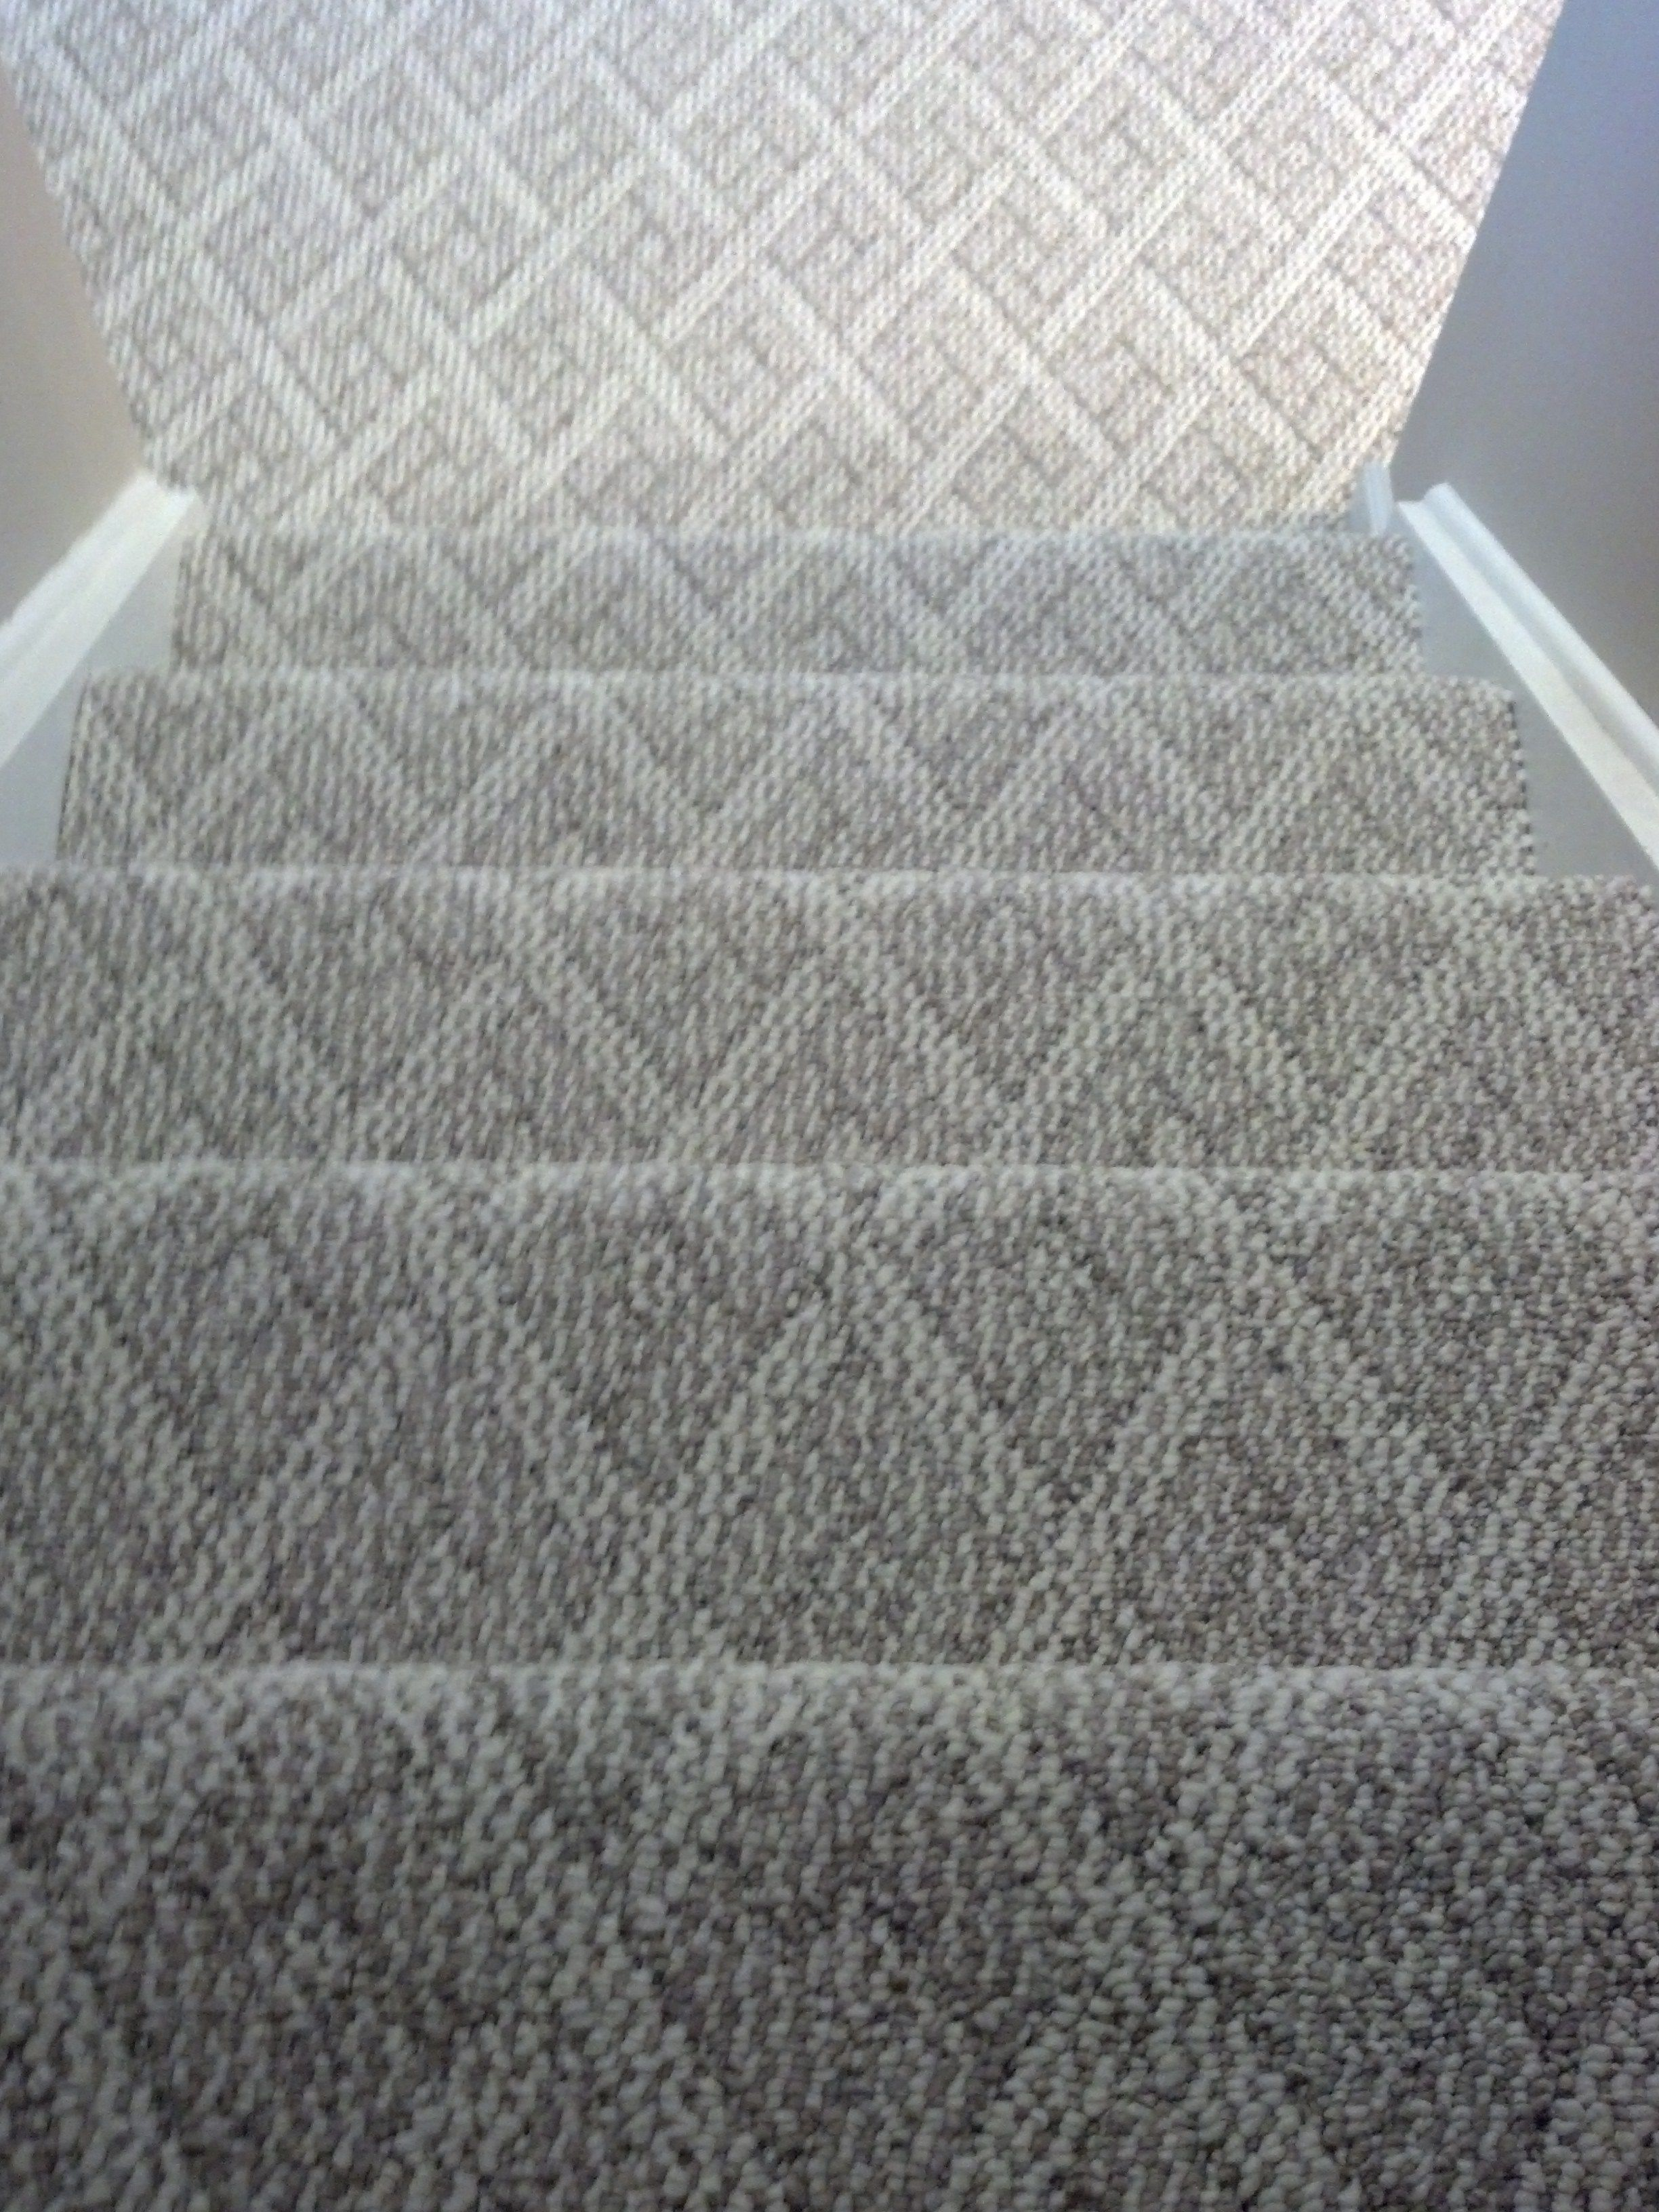 Berber carpet Cincinnati, Ohio installed on steps and ...